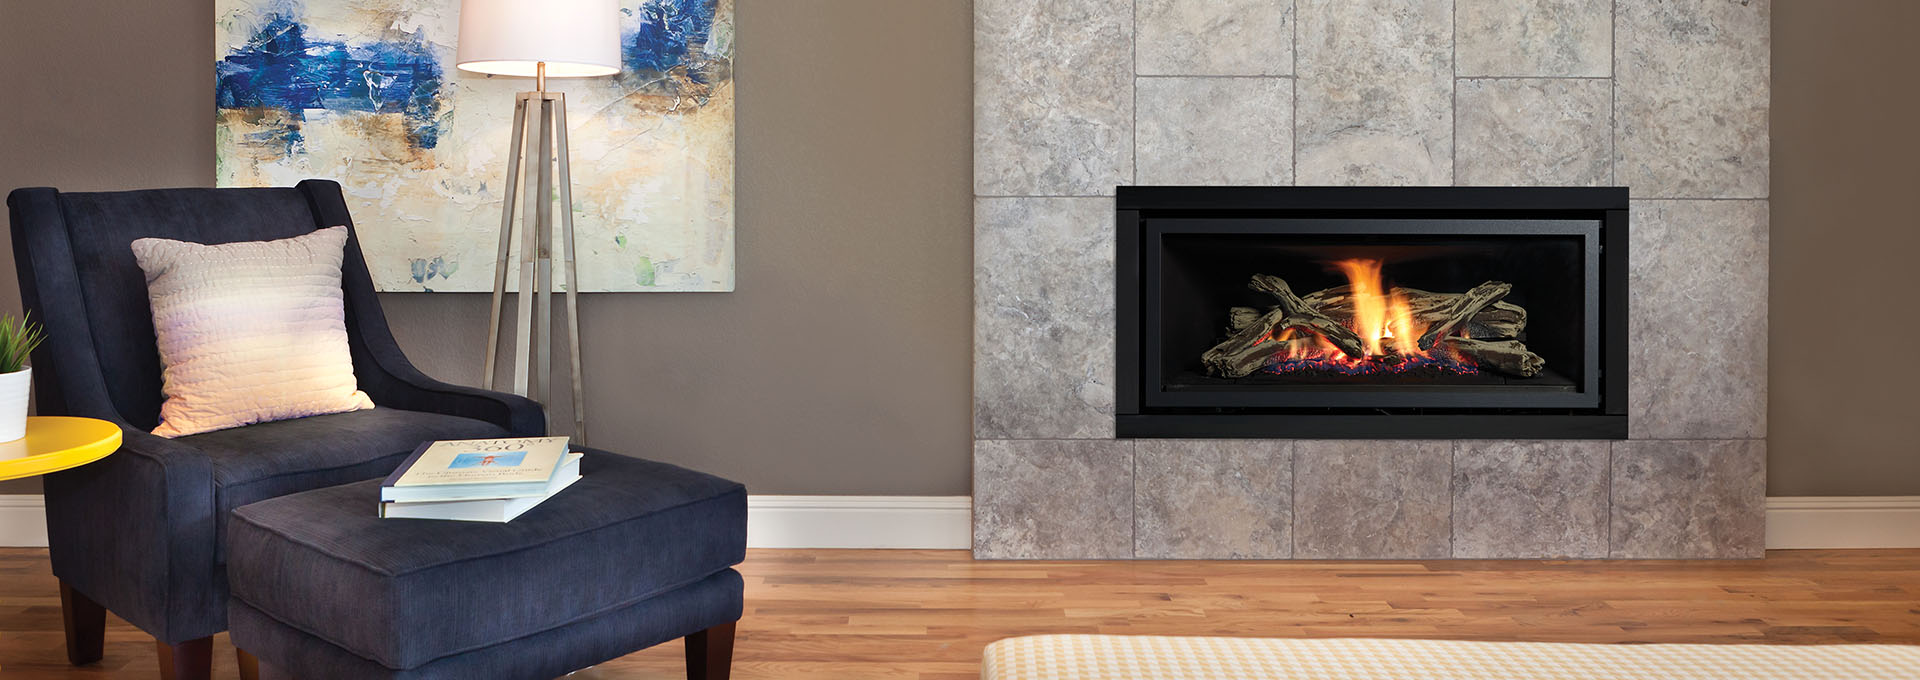 Regency Ultimate U900e Gas Fireplace